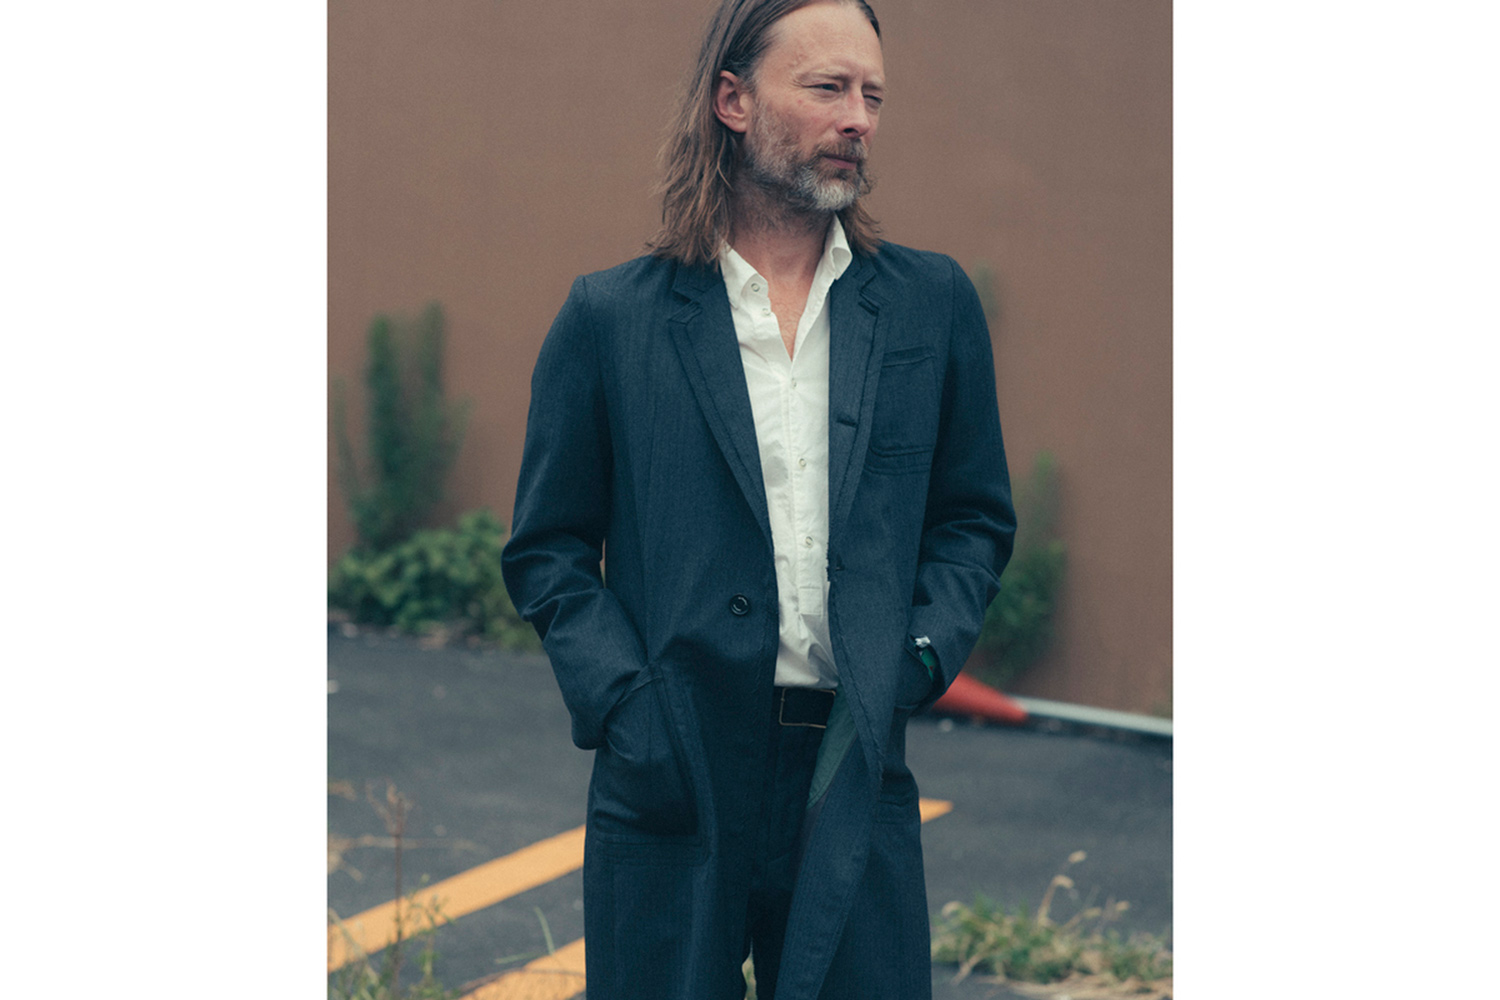 theshepherdundercover 8 Thom Yorke and Jonny Greenwood rework Radiohead songs for glorious new 16 minute mix